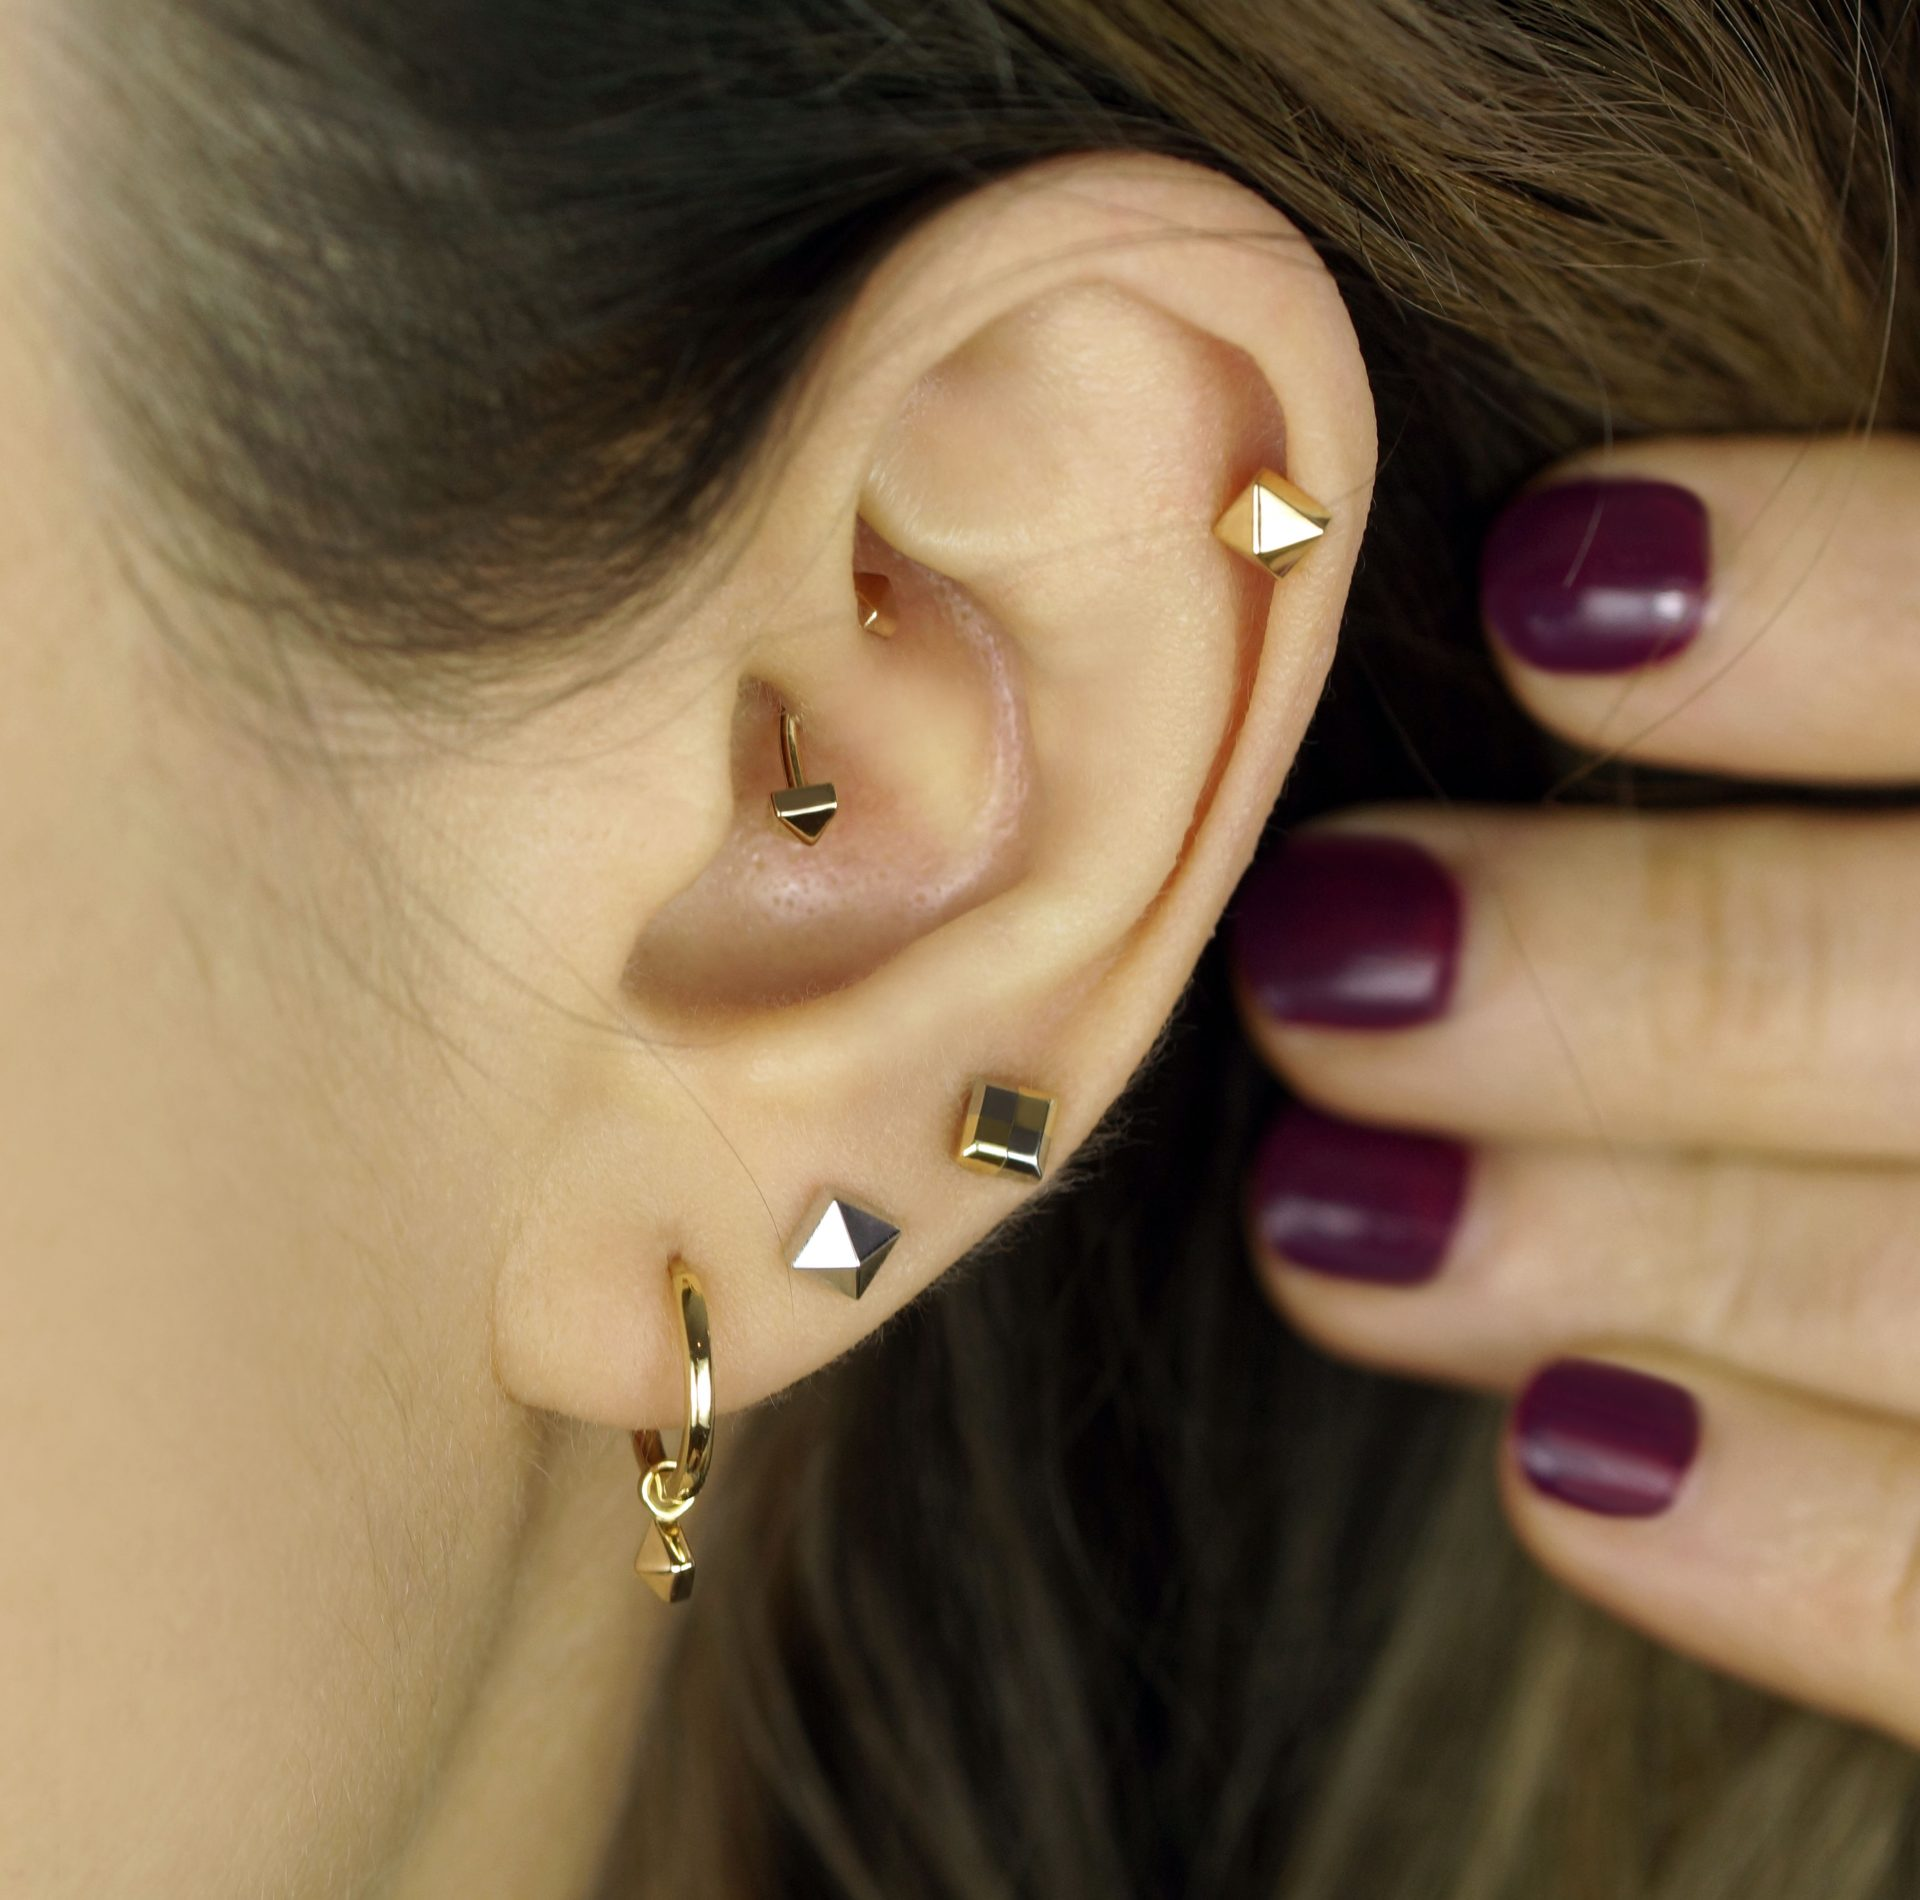 18k-Solid-Gold-Unisex-Pyramid-Spike-Piercing-Stud-Lena-Cohen-Fine-Jewellery-Piercing-UK-London